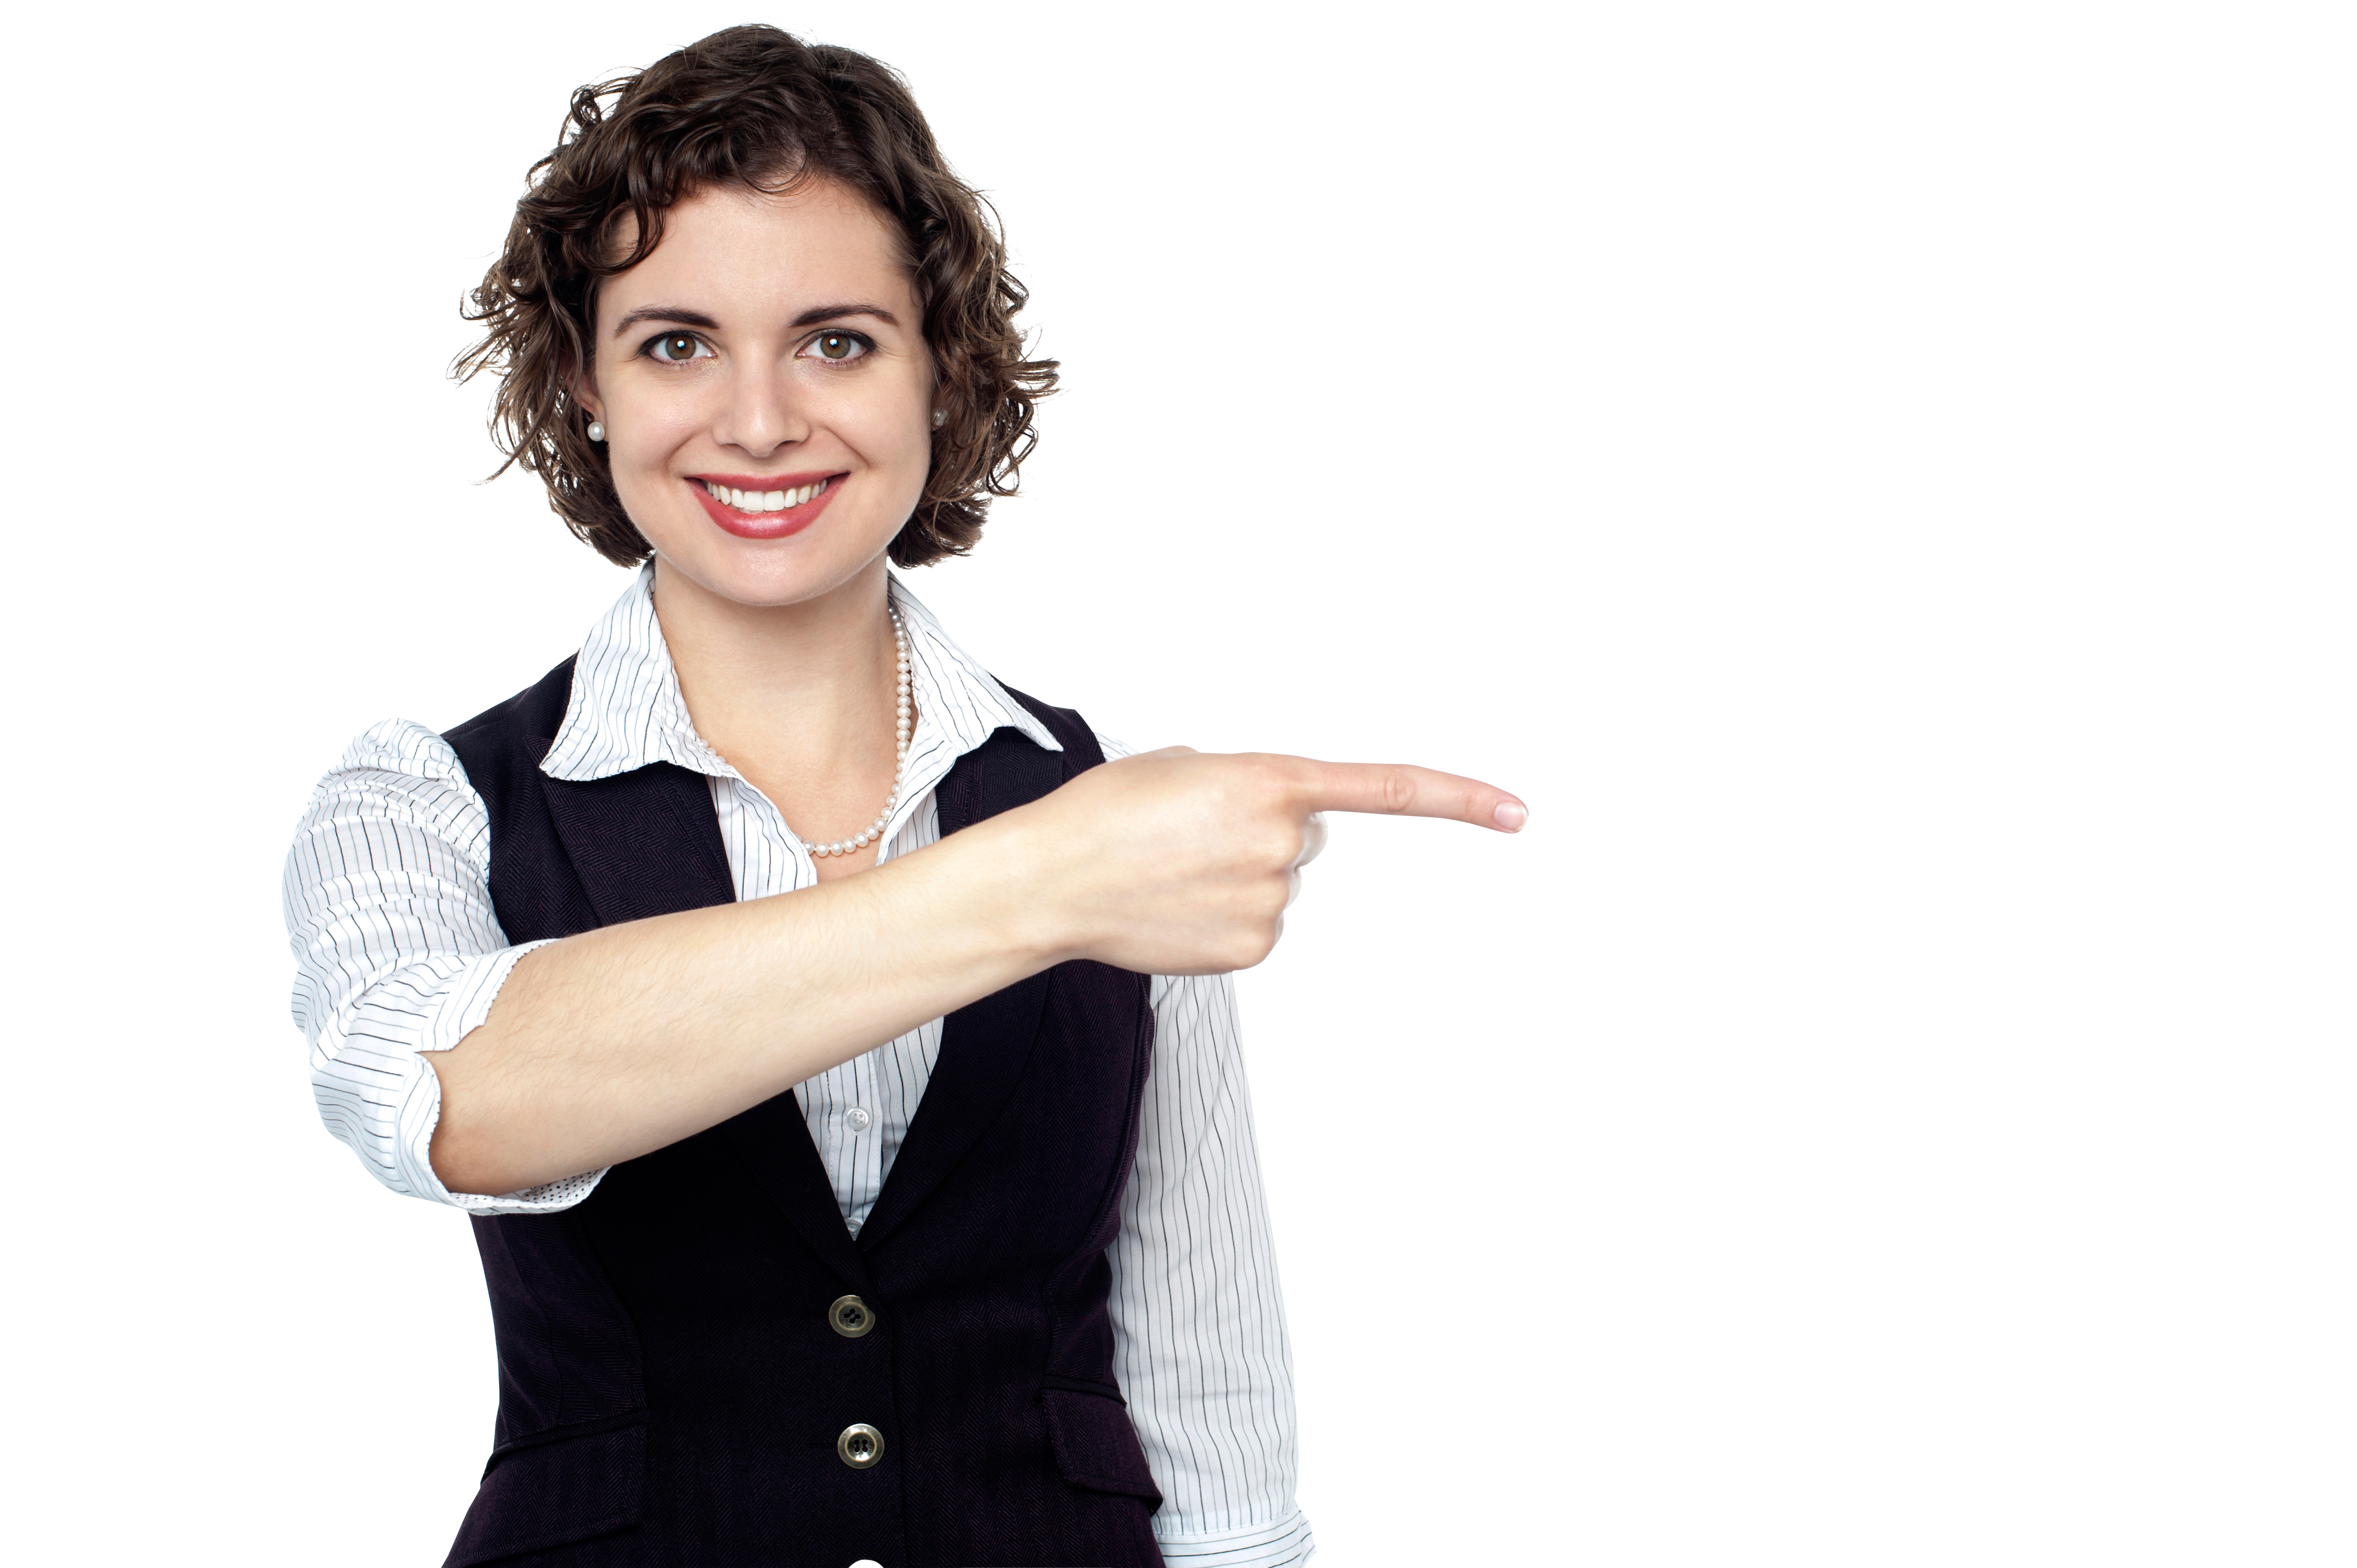 Download Women Pointing Right PNG Image for Free.